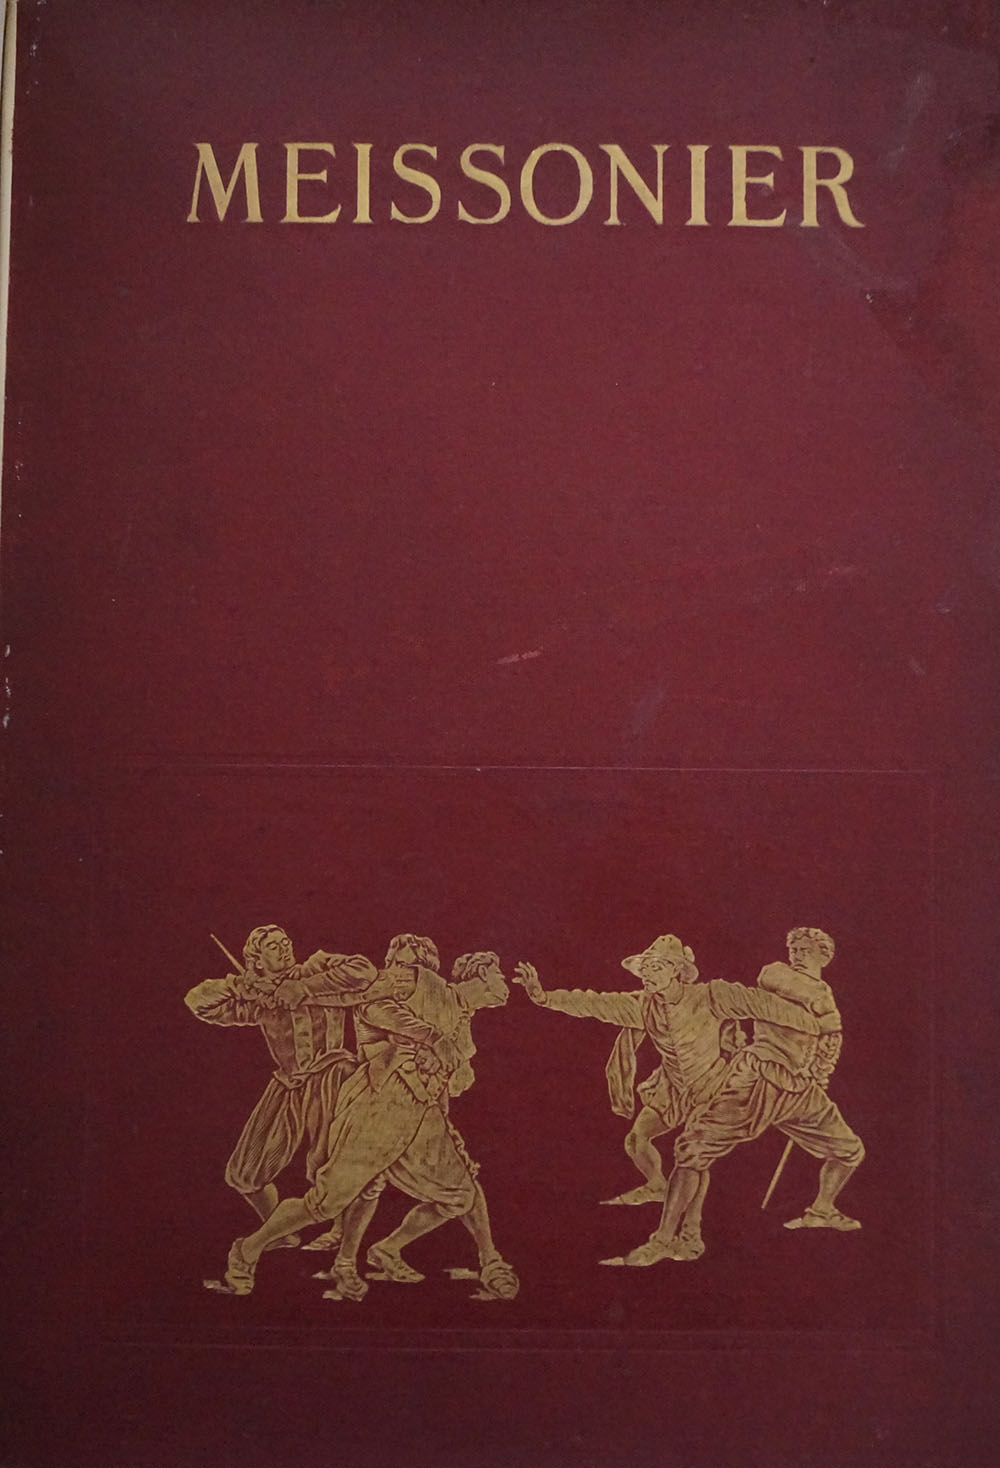 Original cover (bound-in at back) (click for bigger picture)